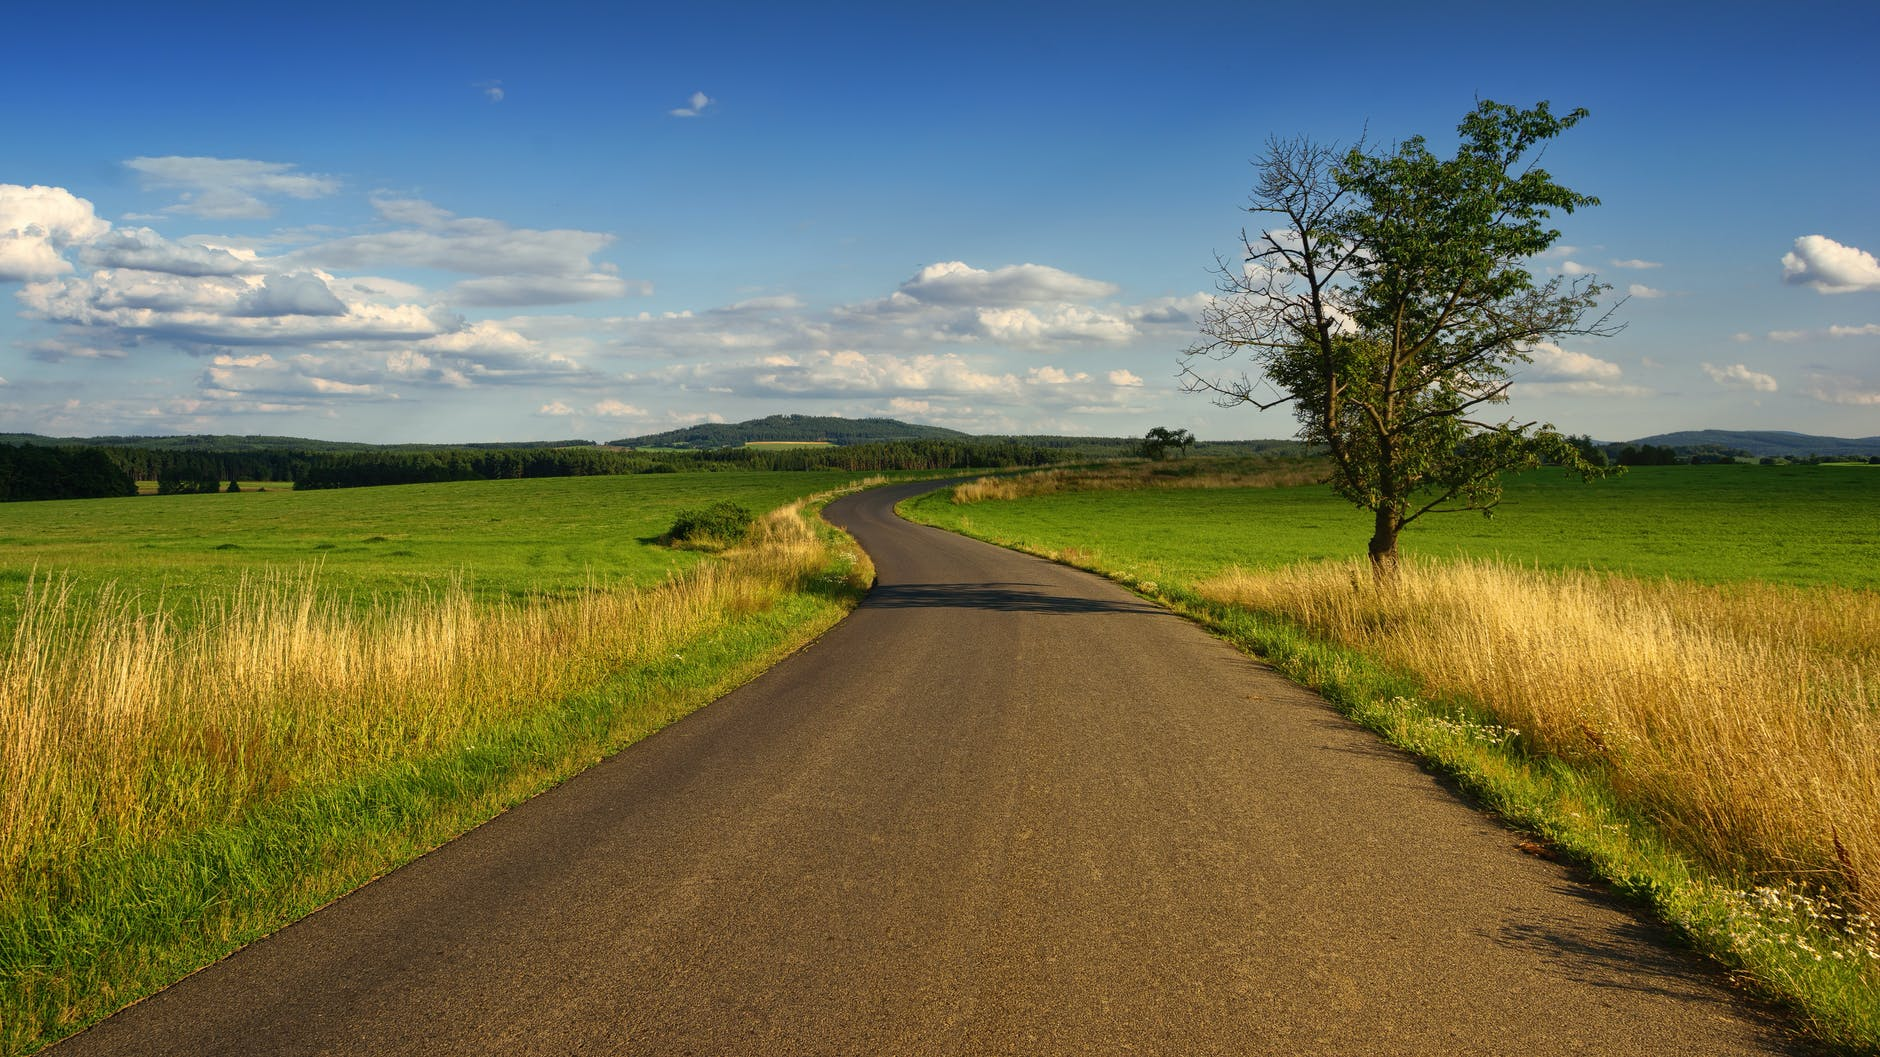 photo of road in the middle of the grass field